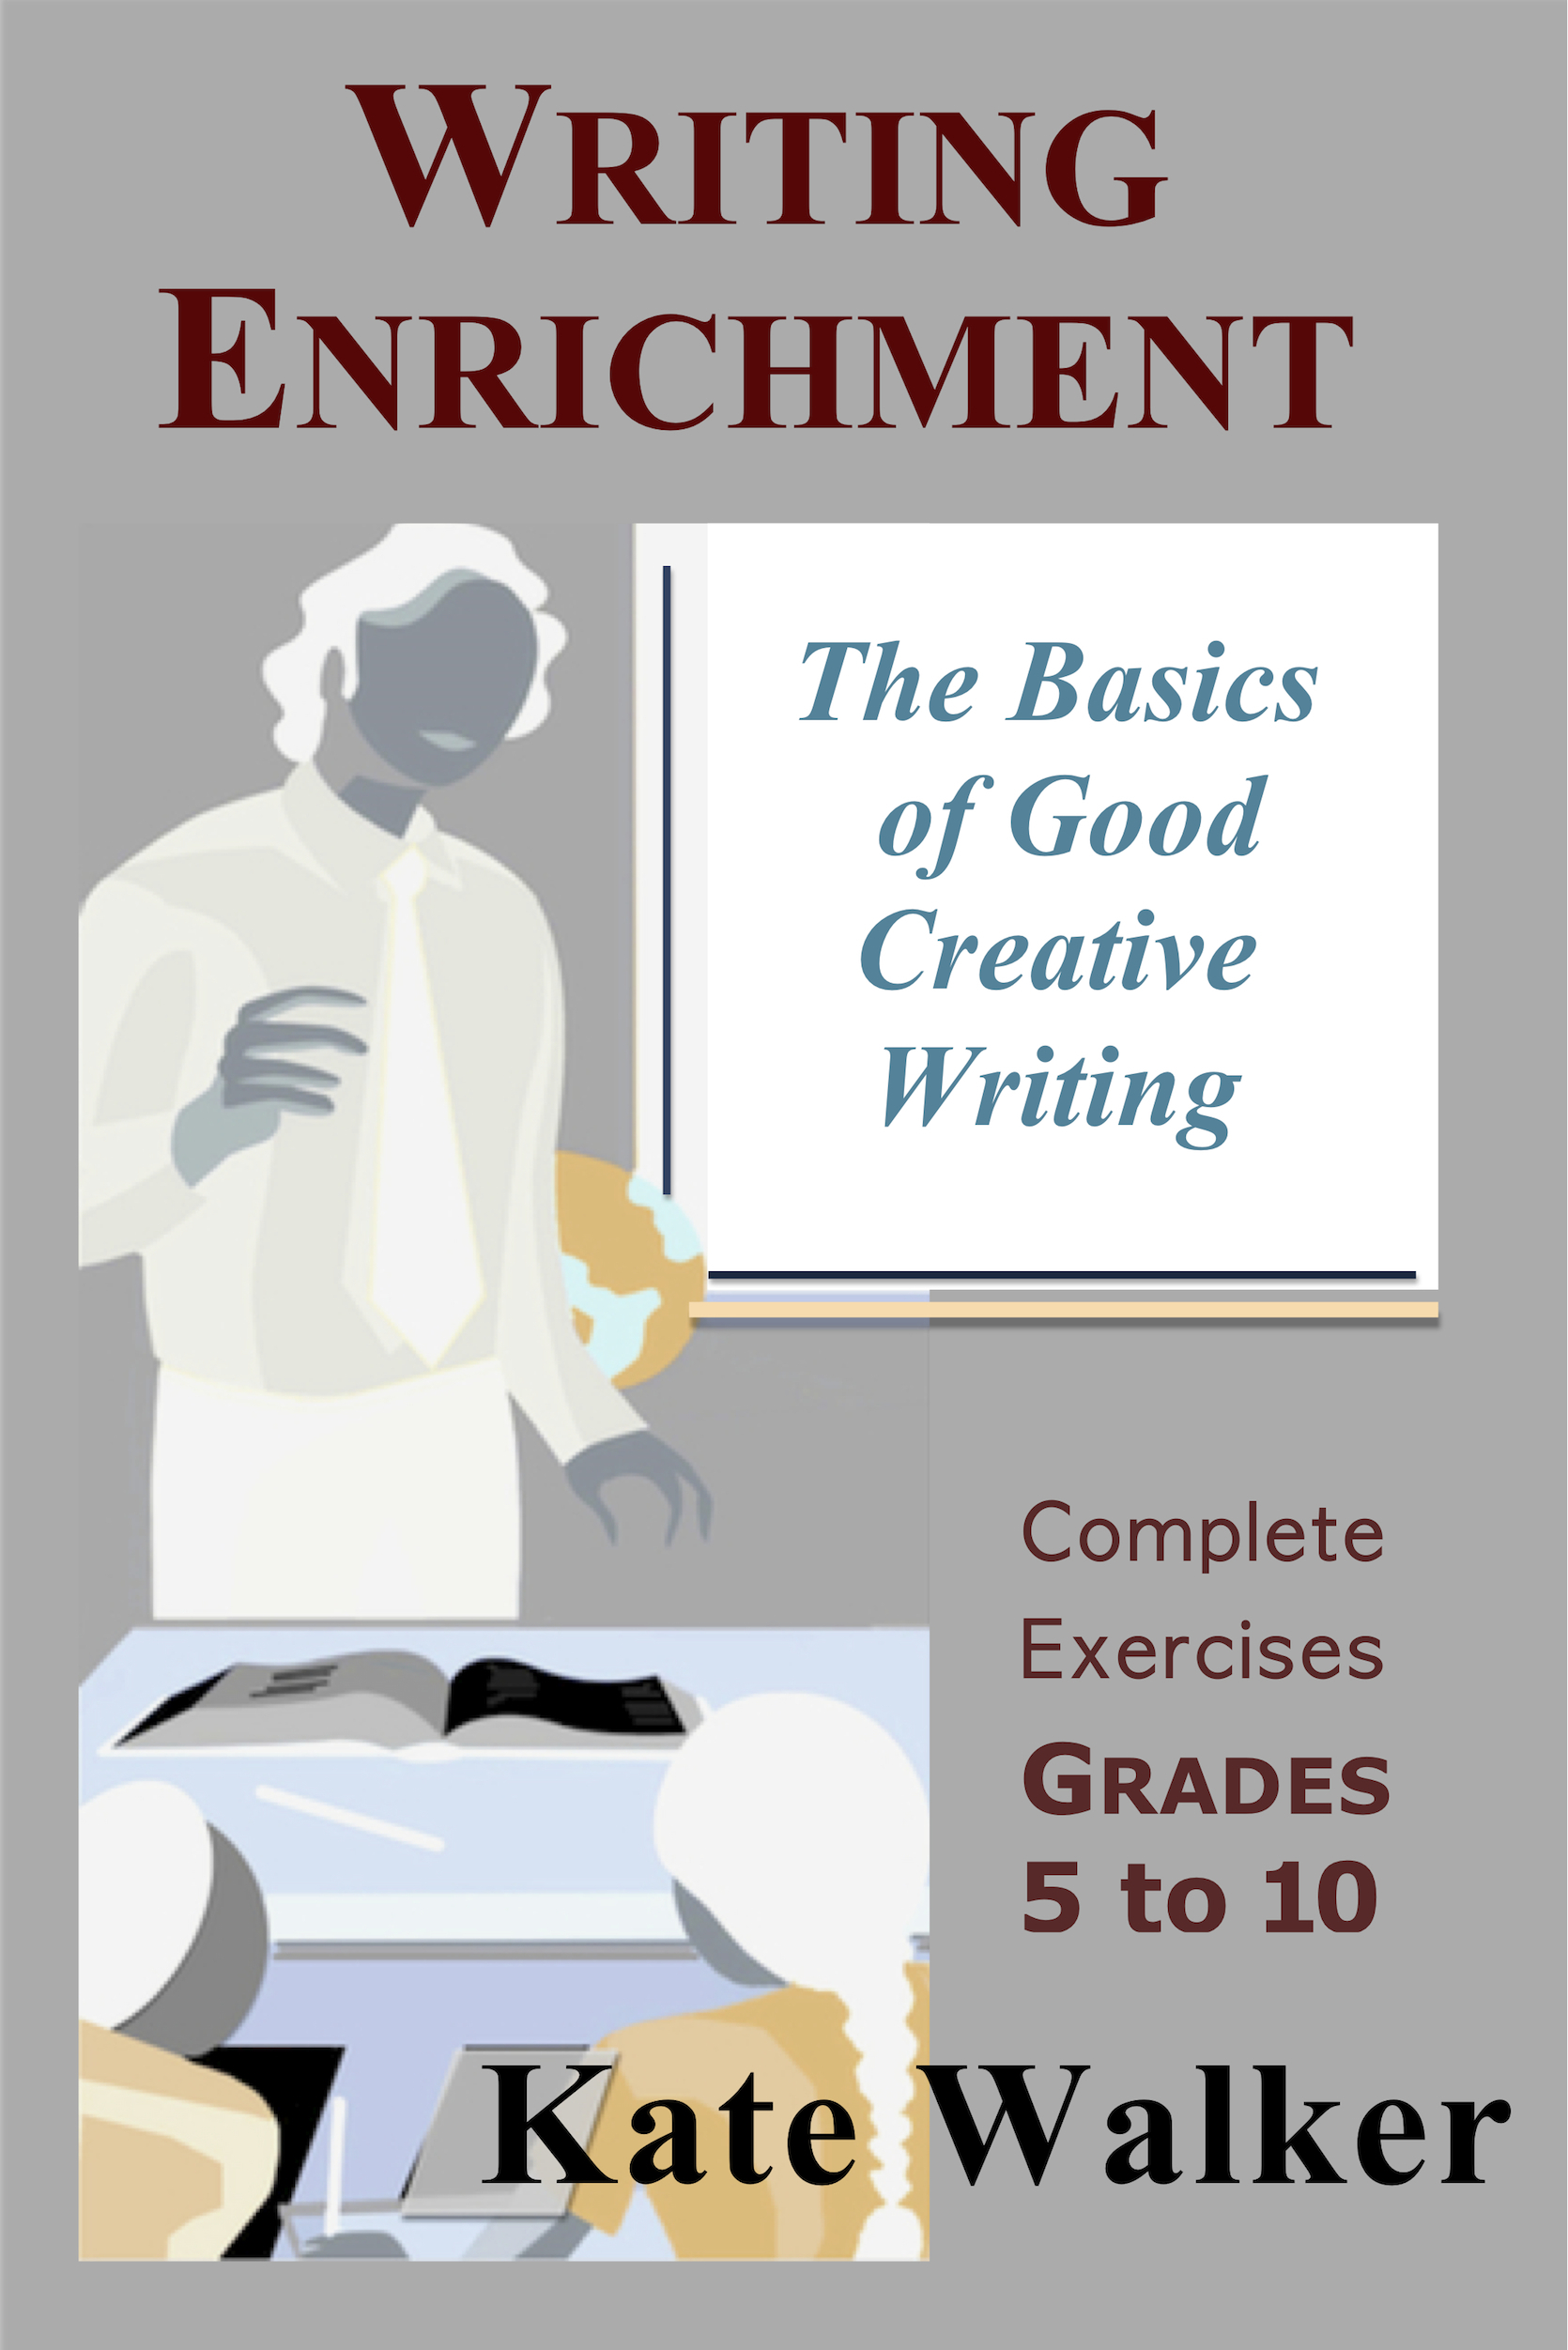 Writing Enrichment: The Basics of Good Creative Writing